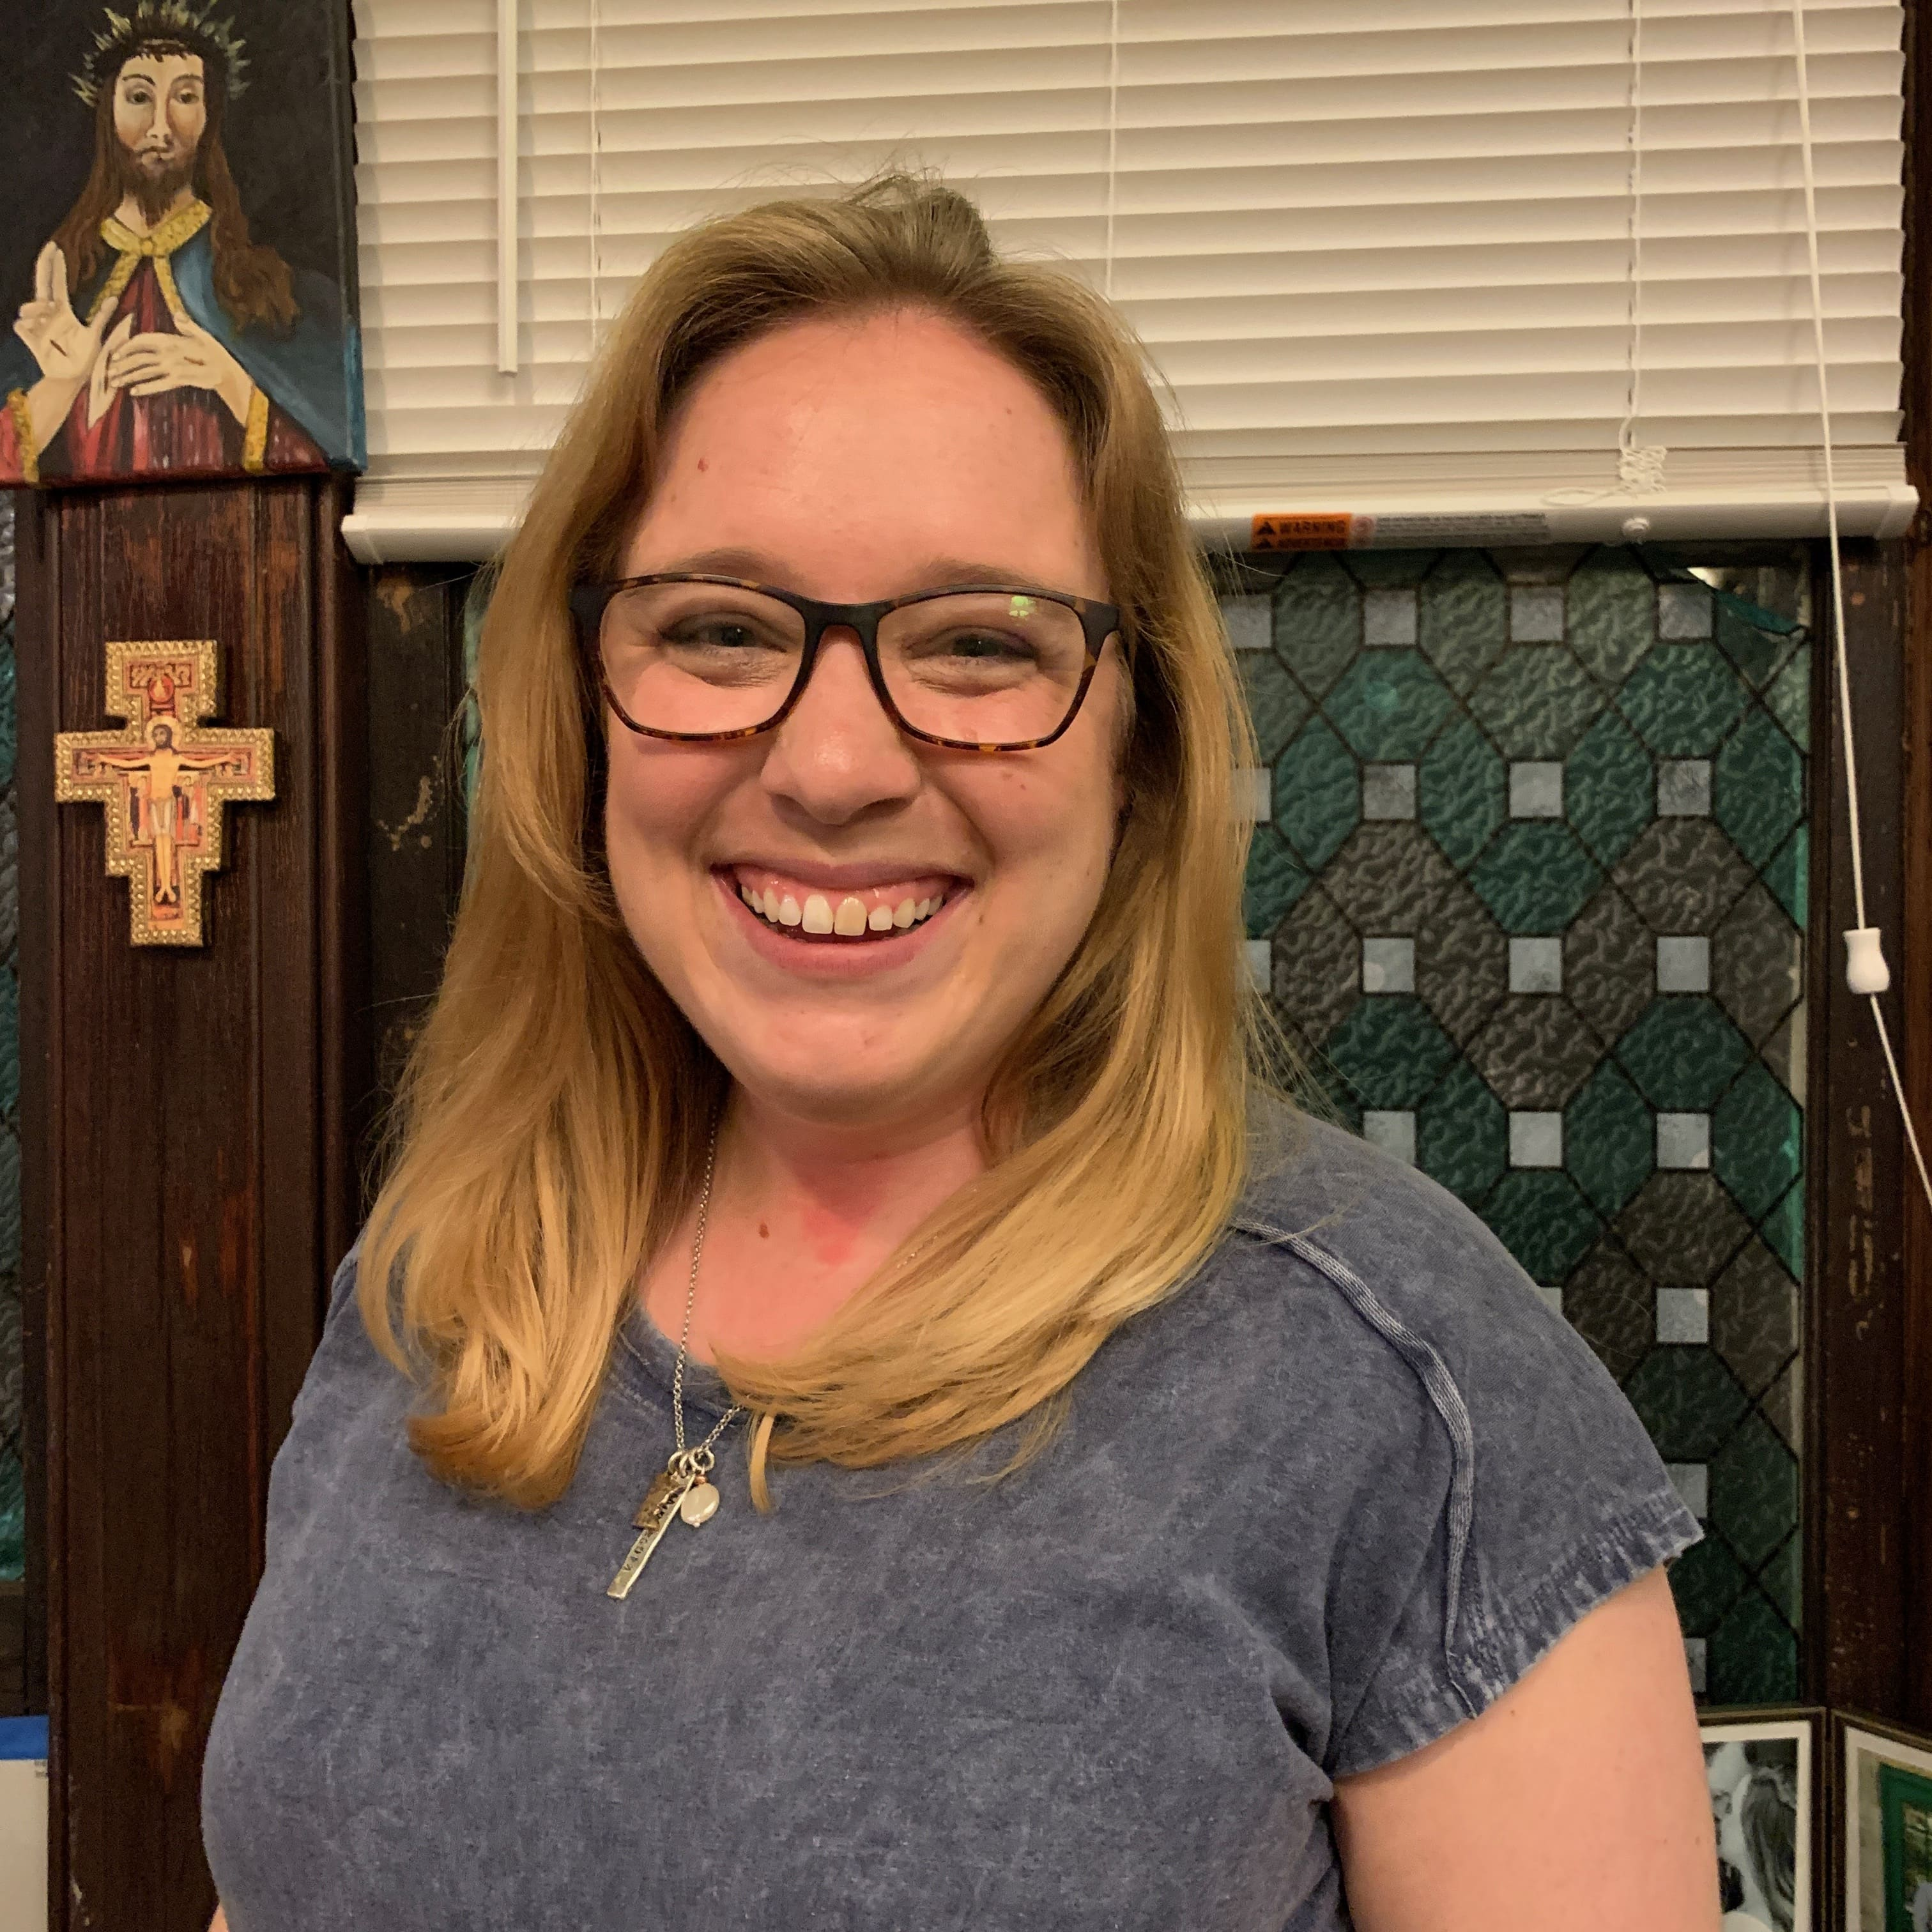 Episode 6: Church Unfolding: The Power of Sacred Stories and Listening. An interview with the Rev. Jane Hale